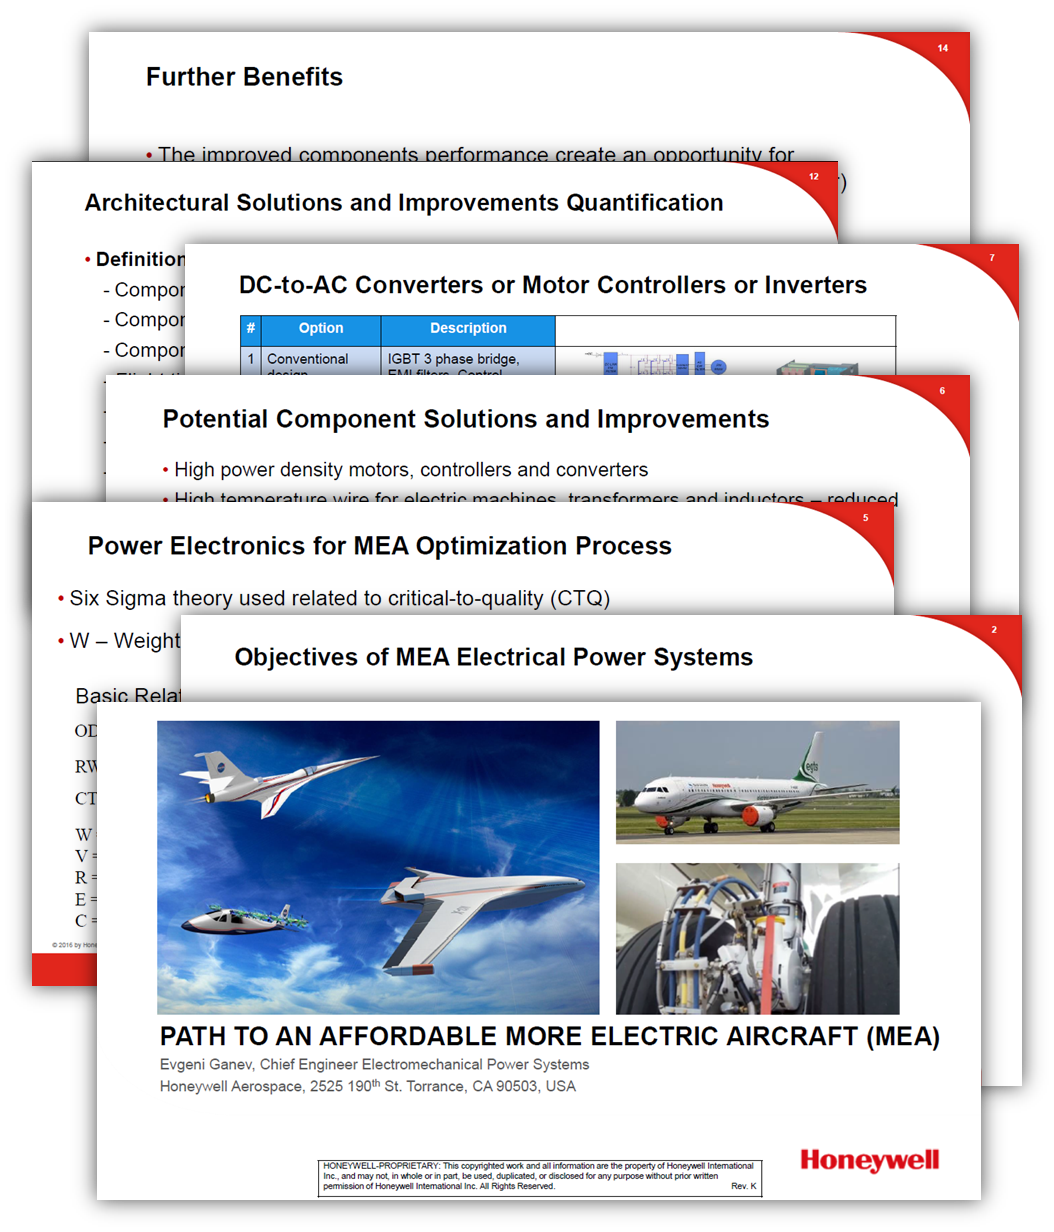 Honeywell Maps the Path to Affordable MEA